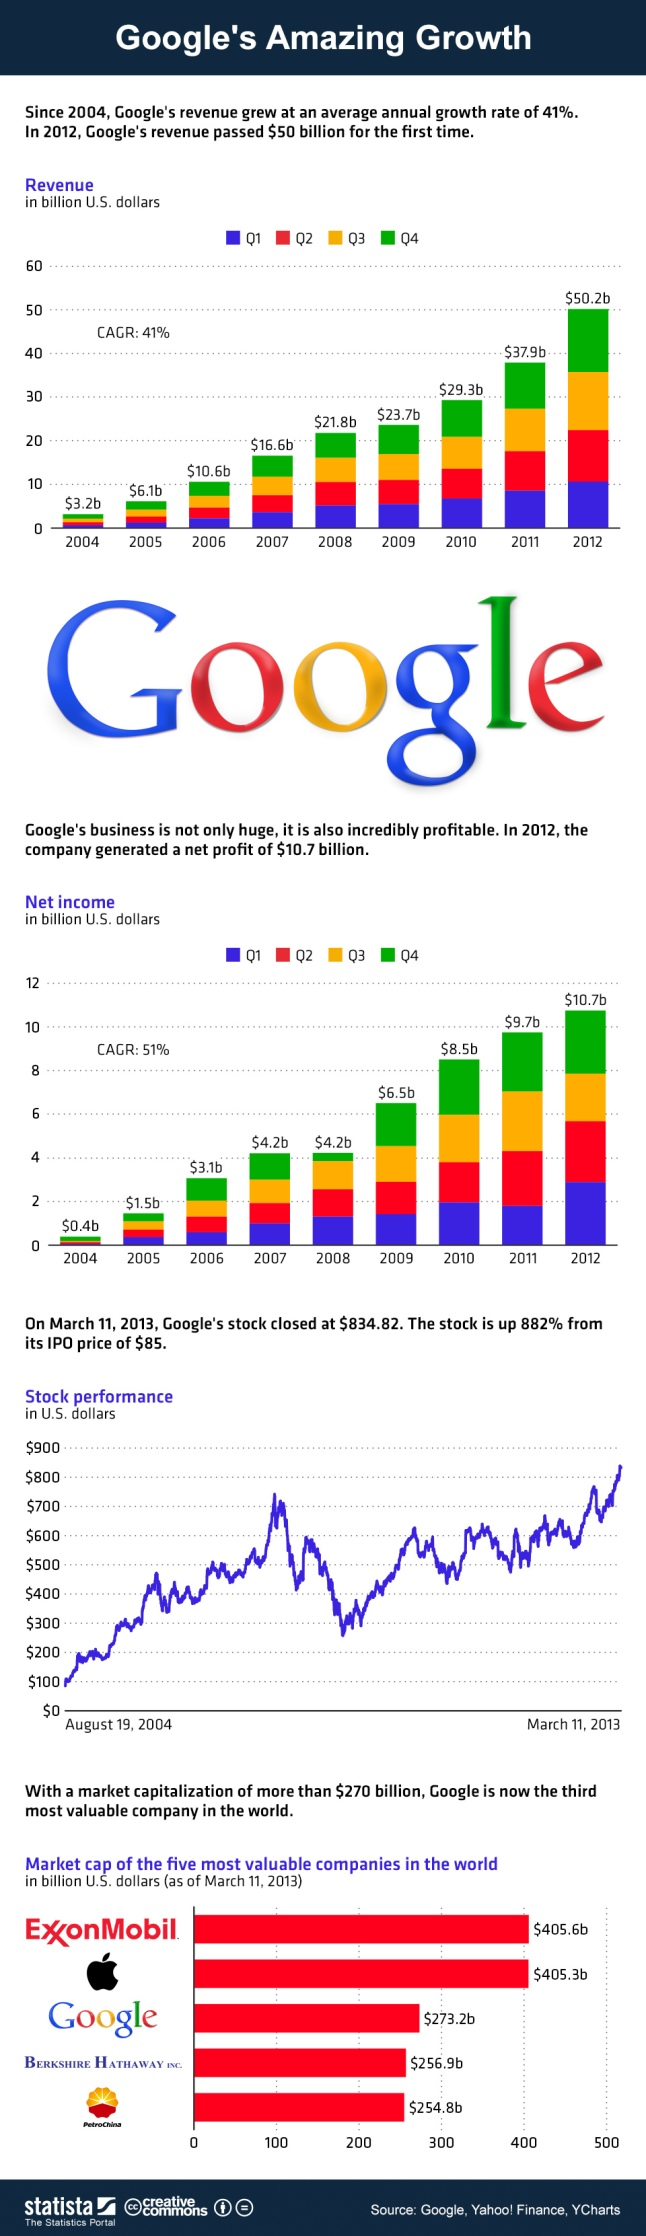 chartoftheday_977_Googles_amazing_growth_b